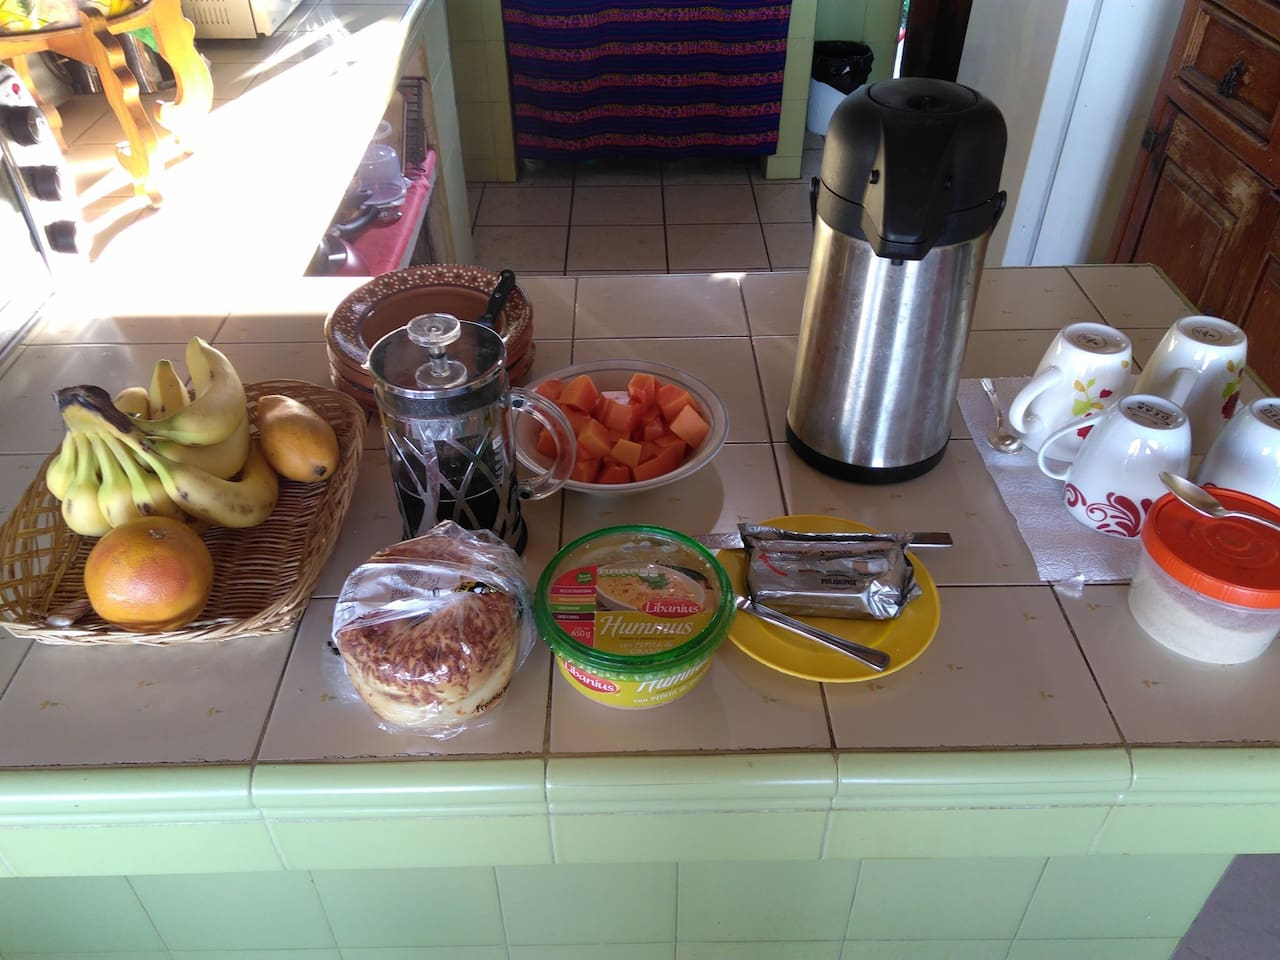 Fruit, coffee, toast or bagels, cream cheese for breakfast